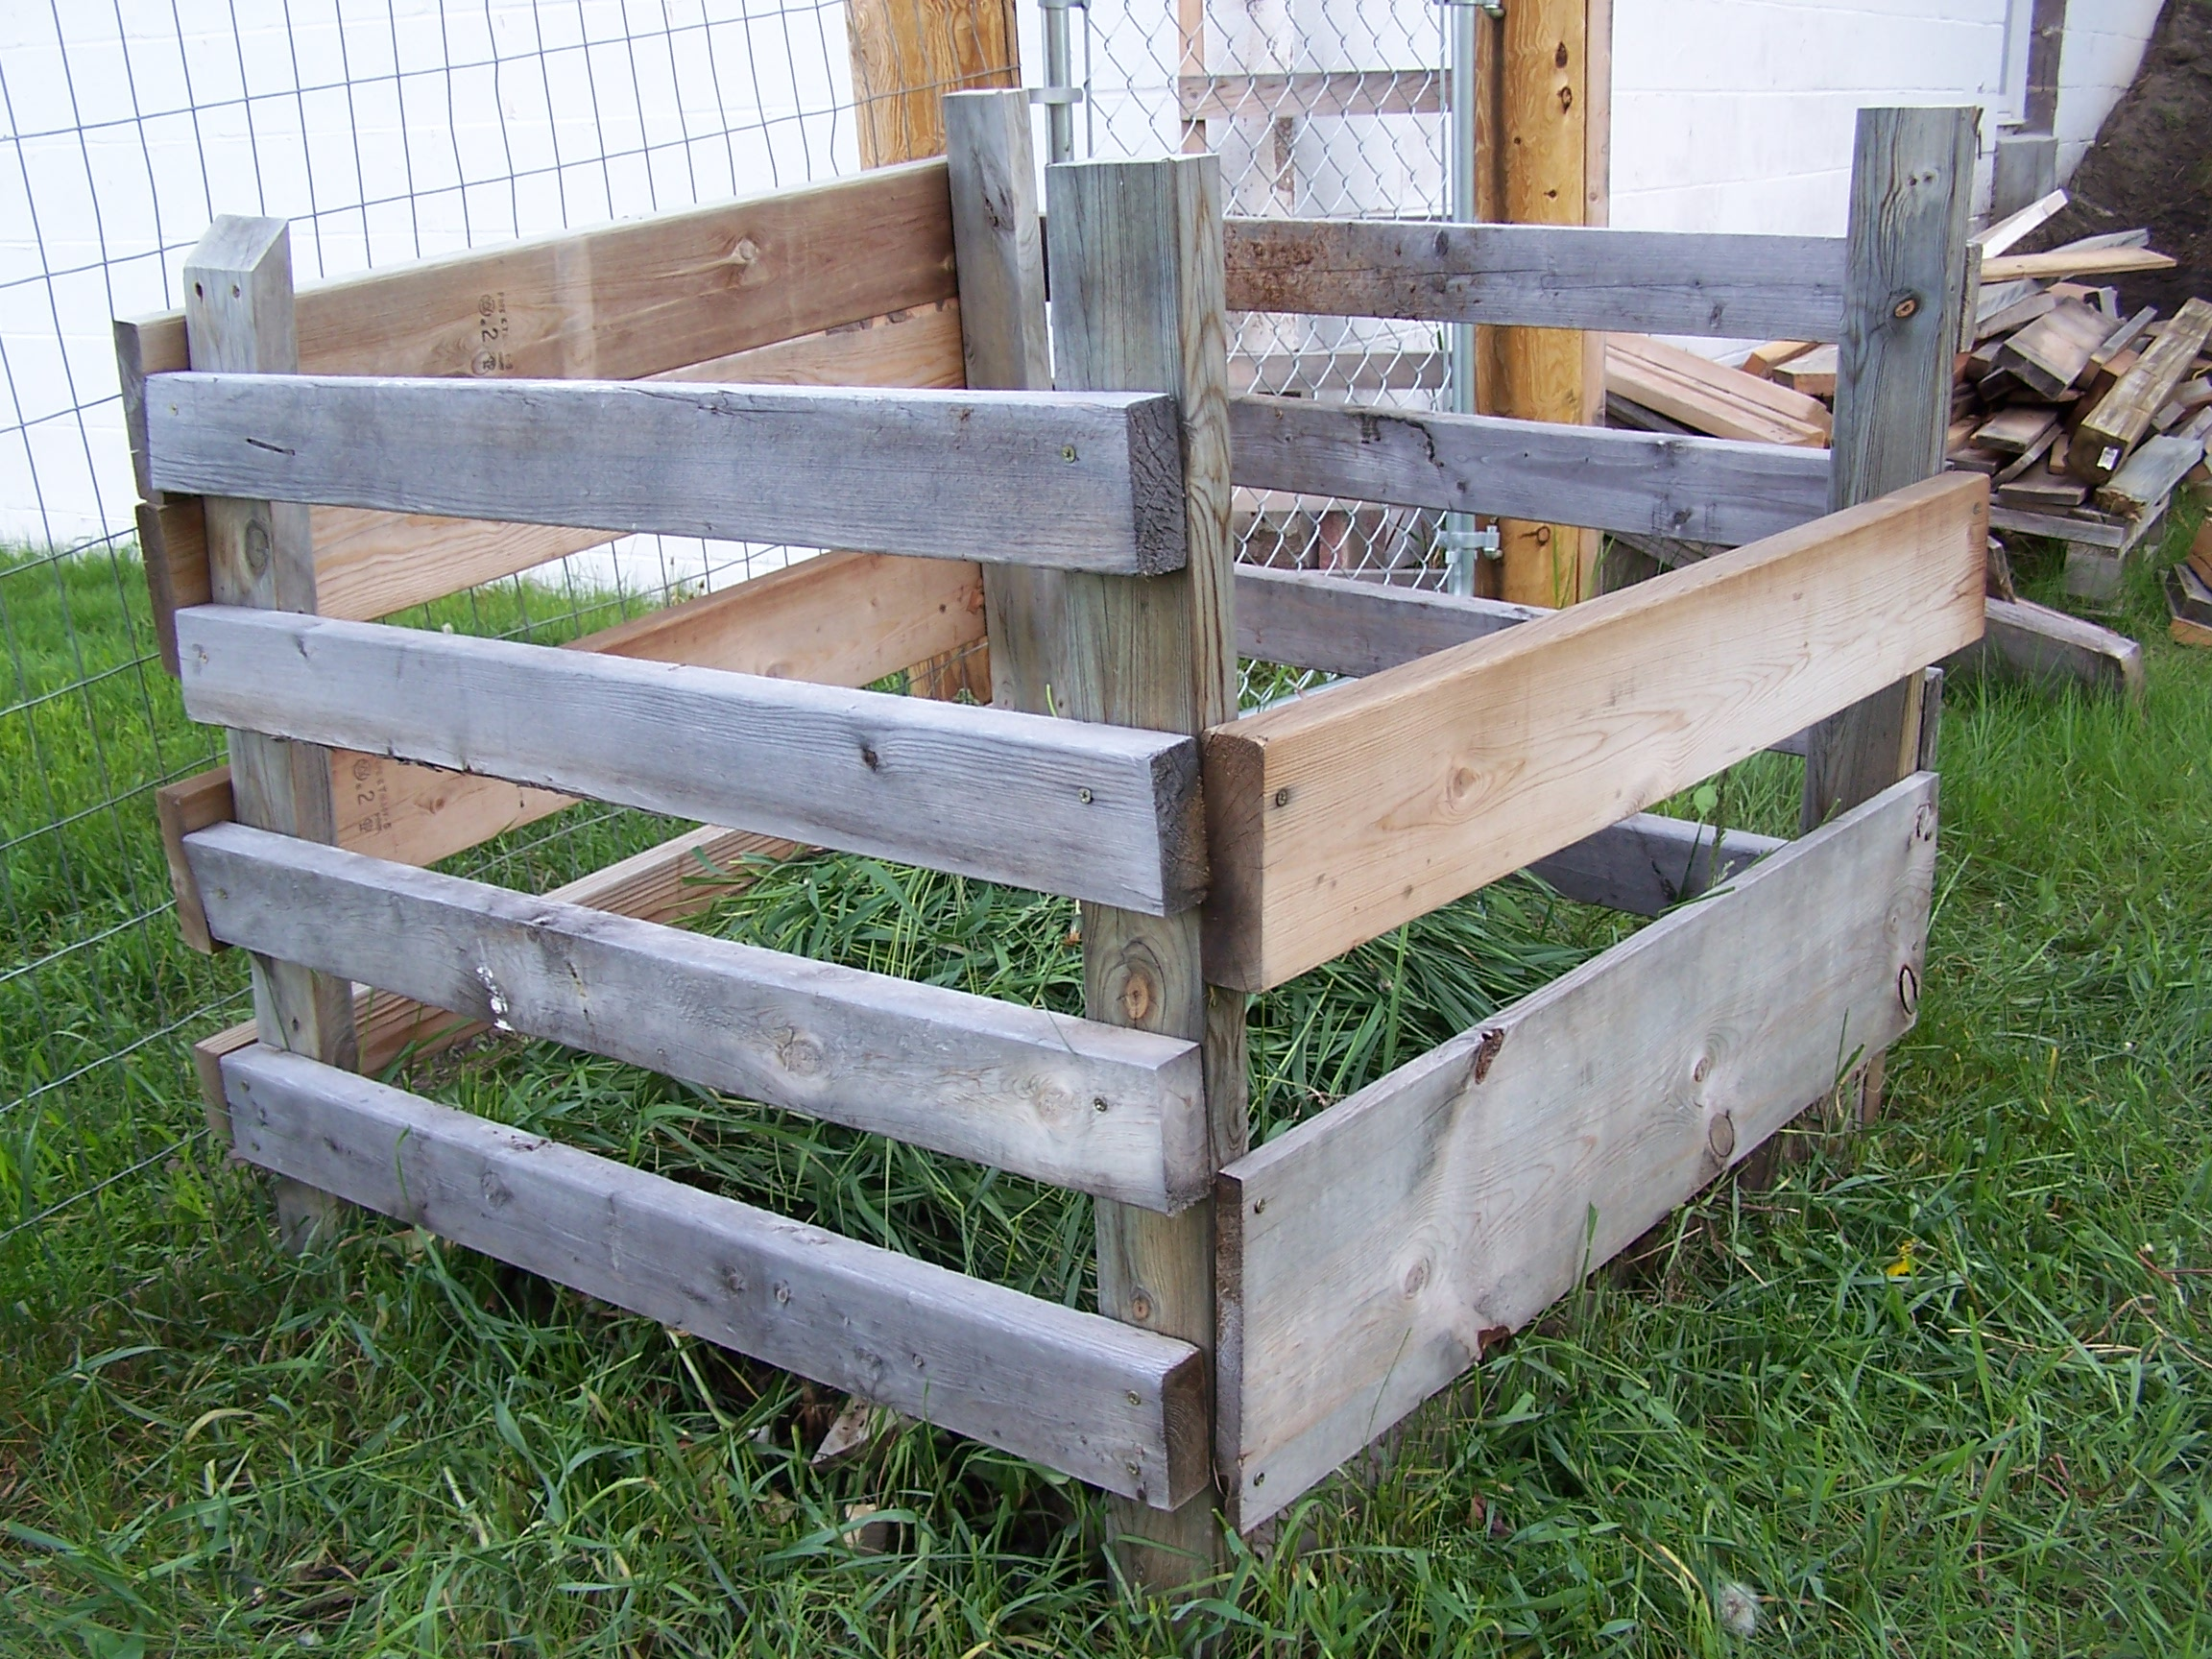 Diy Compost Bin Plans Homemade Compost Bin Wood Projects Pictures Diy Pdf Plans